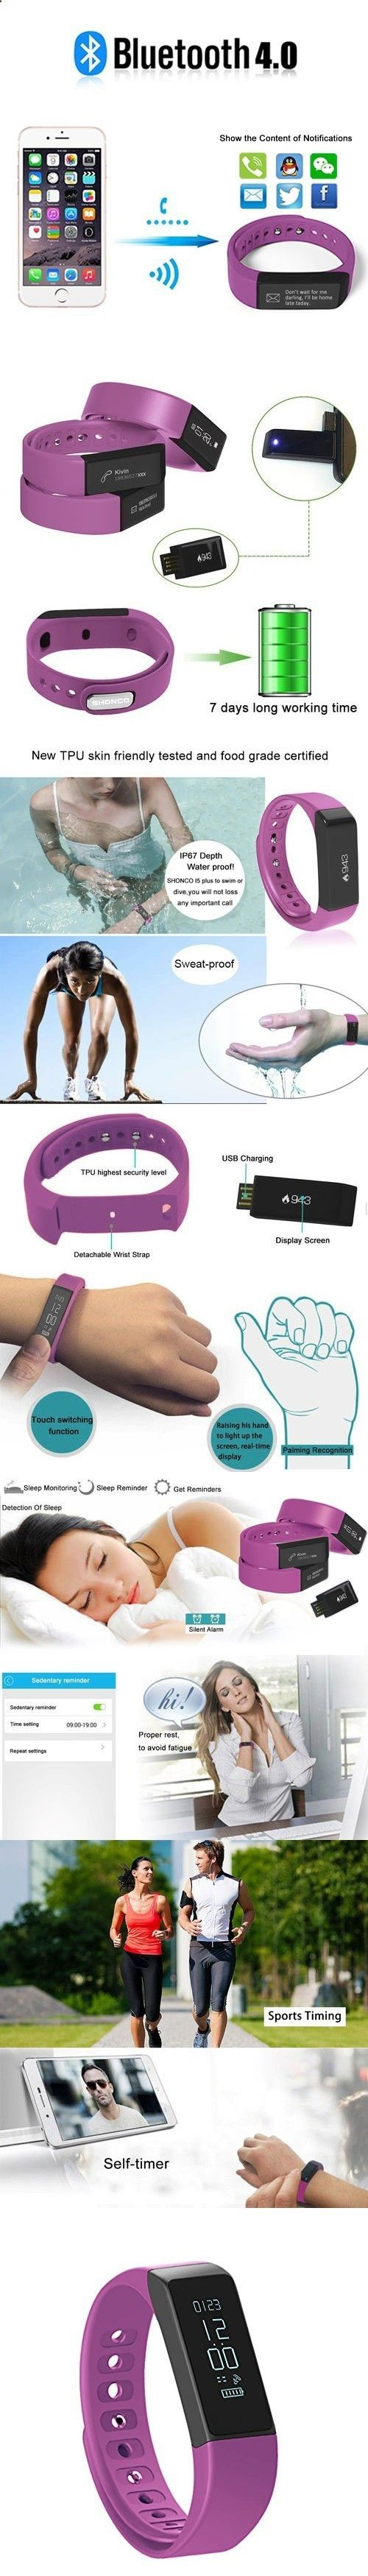 Activity Bracelets Fitness - Activity Bracelets Fitness - Fitness Tracker Pedometer SHONCO I5 Plus Waterproof Bluetooth Activity Tracker Smart Sports Band Bracelet Wristband with Touch Screen Calories Counter Health Sleep Monitor for iPhone Android Phones - The benefits of wearing these smart bracelets are not only in your comfort, but also in that they are able to control all your physical progress - The benefits of wearing these smart bracelets are not only in your comfort, but also ...